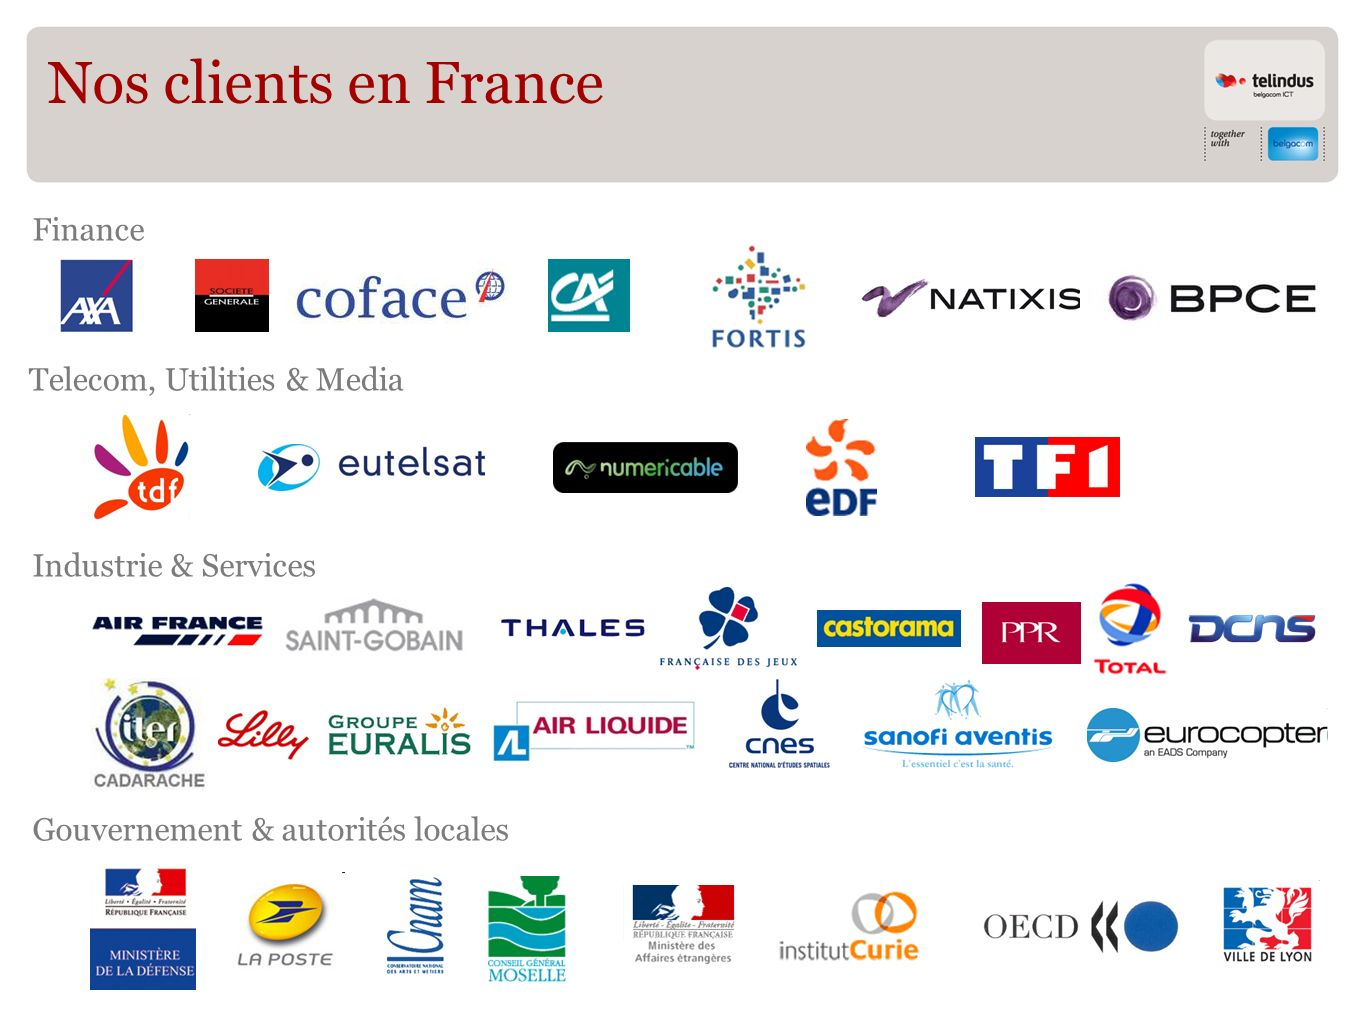 Nos clients en France Finance Gouvernement & autorités locales Industrie & Services Telecom, Utilities & Media